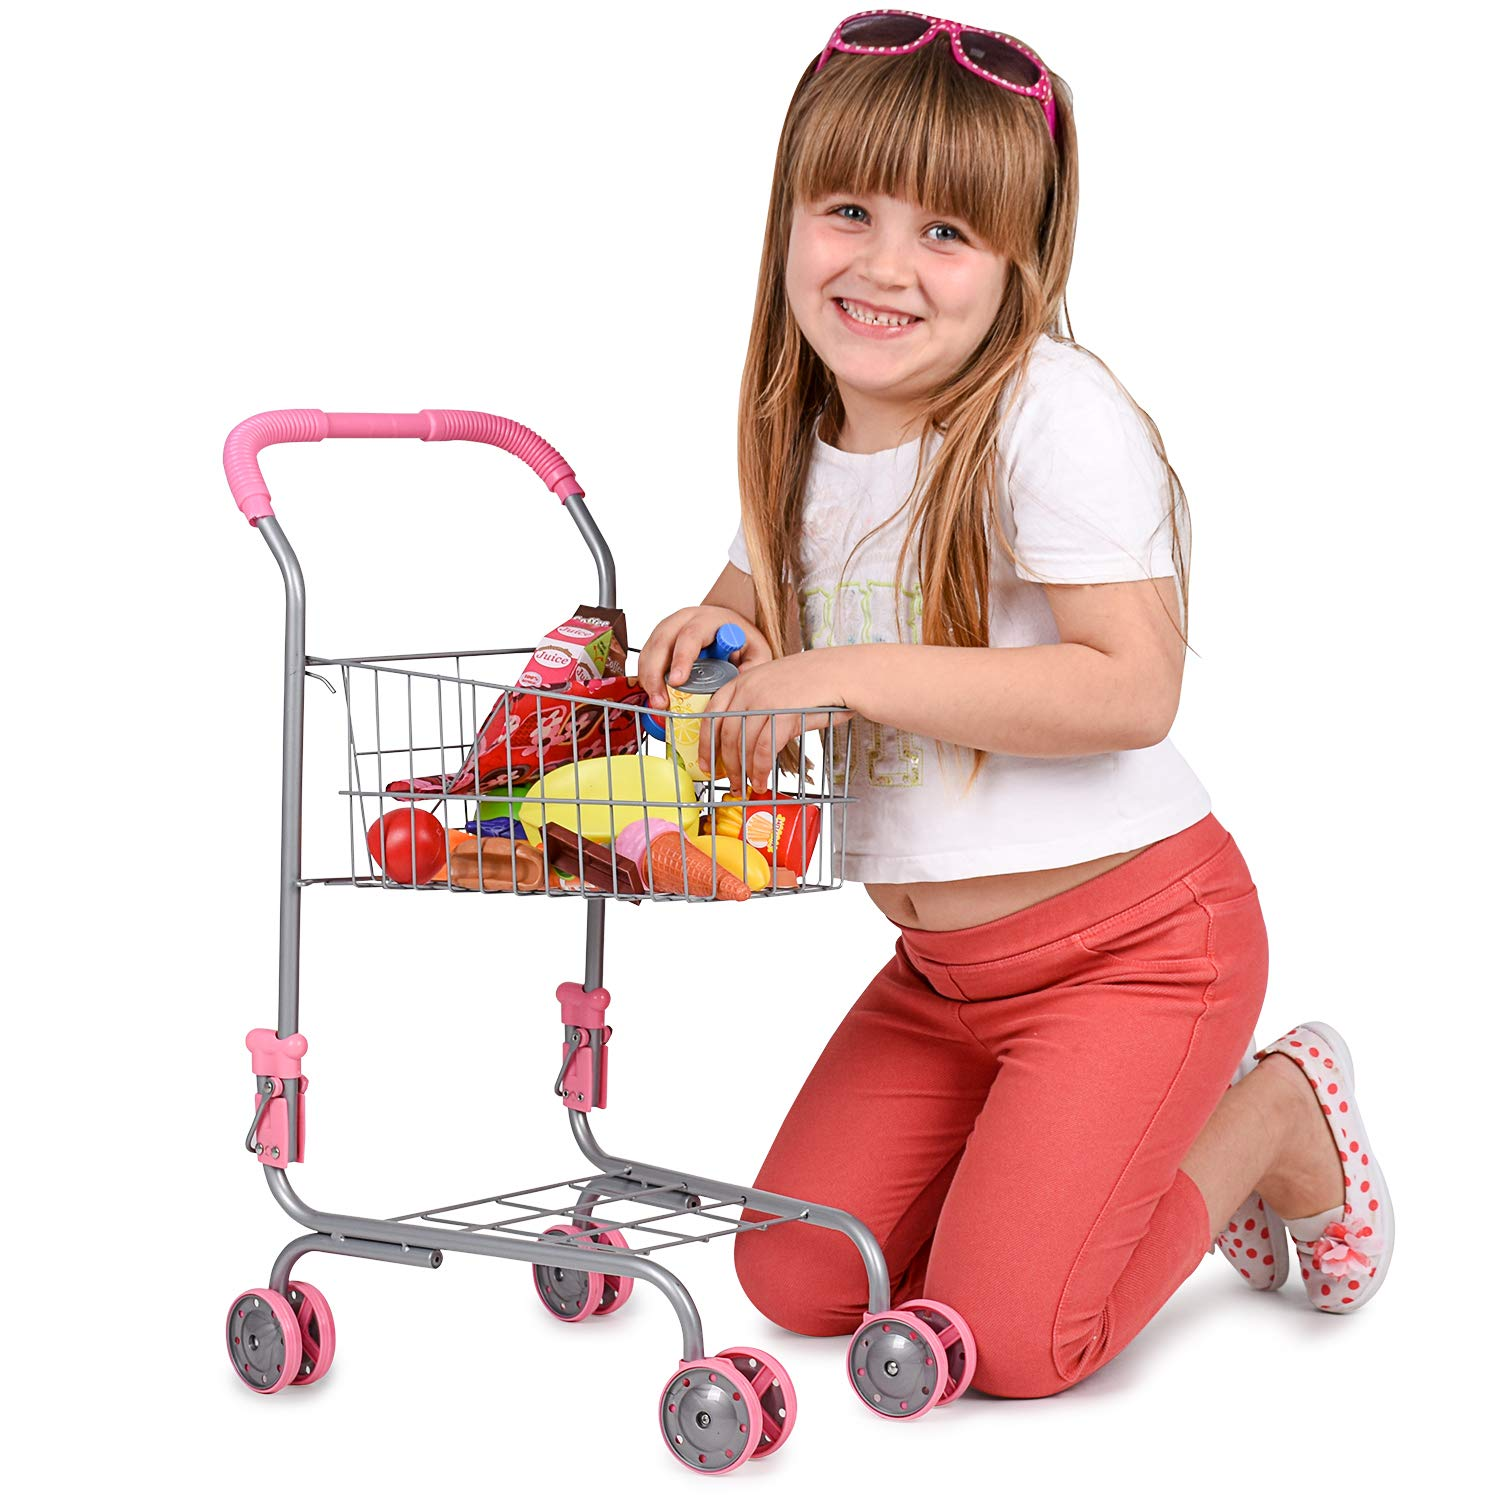 Abco Tech Pretend Play Children's Toy Shopping Cart – Ideal Grocery Cart Trolley for Toddlers & Kids – Easy to Pretend Shop with Included Toy Grocery or Food Items